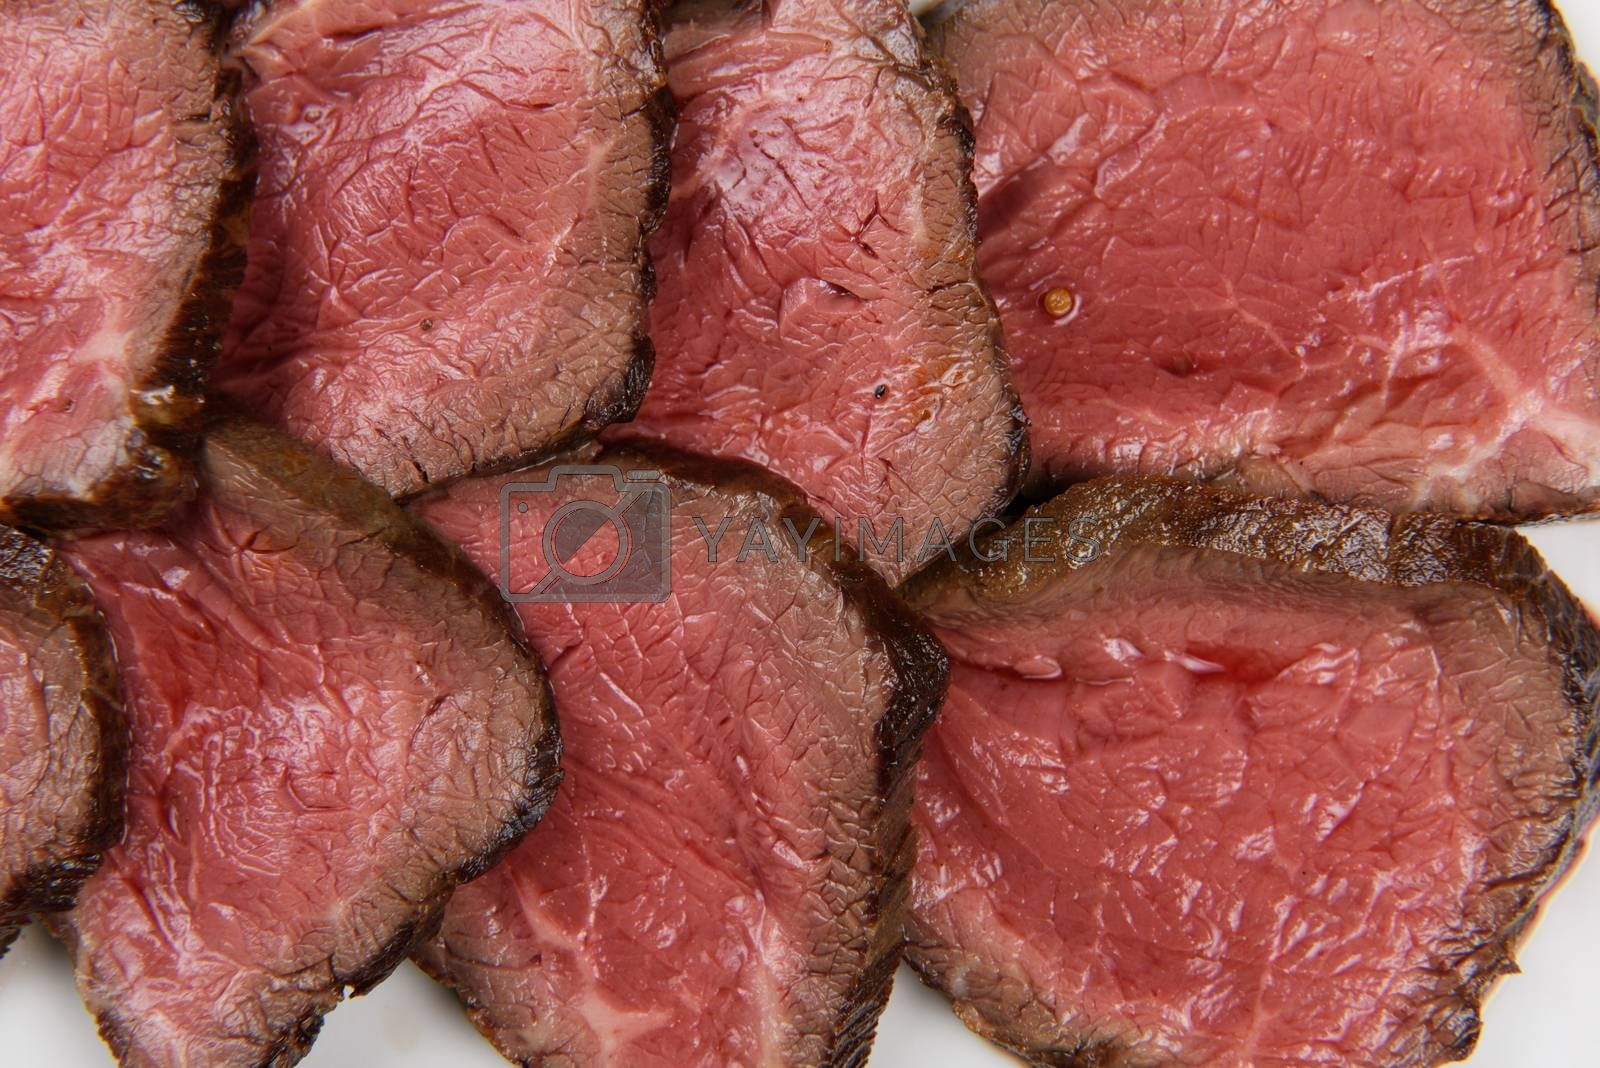 Plate with meat cutting and fresh greens on white plate